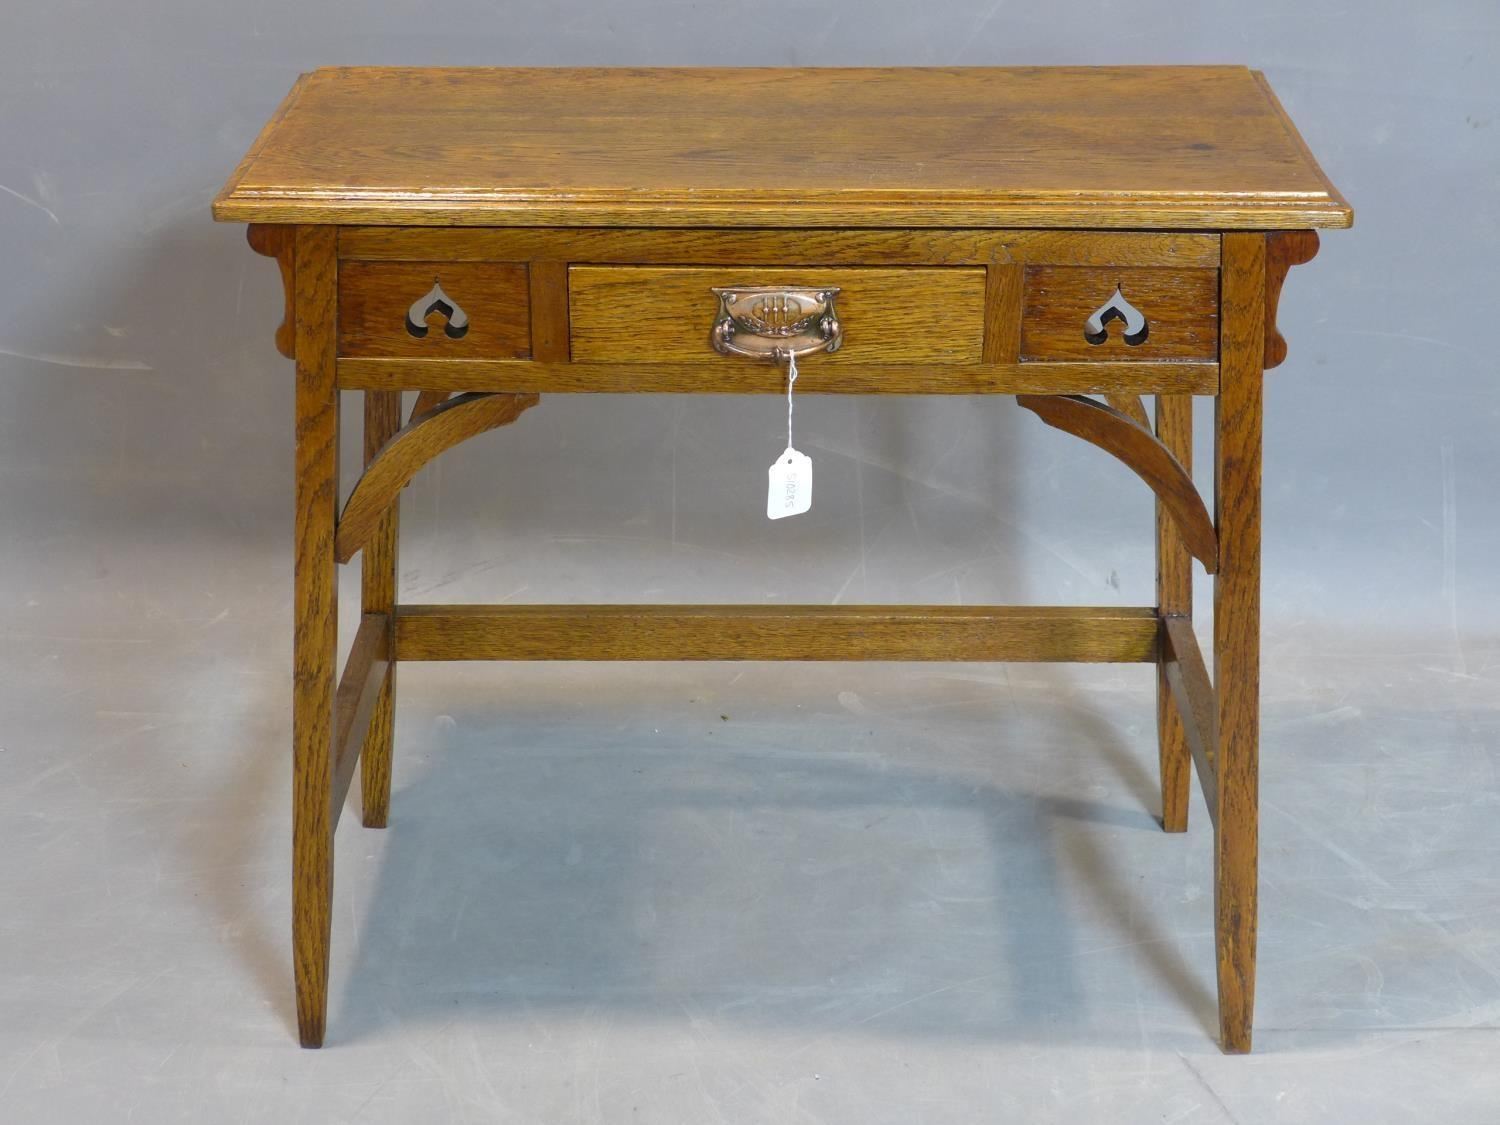 Lot 114 - An Arts and Crafts oak side table, with central drawer, raised on square legs joined by